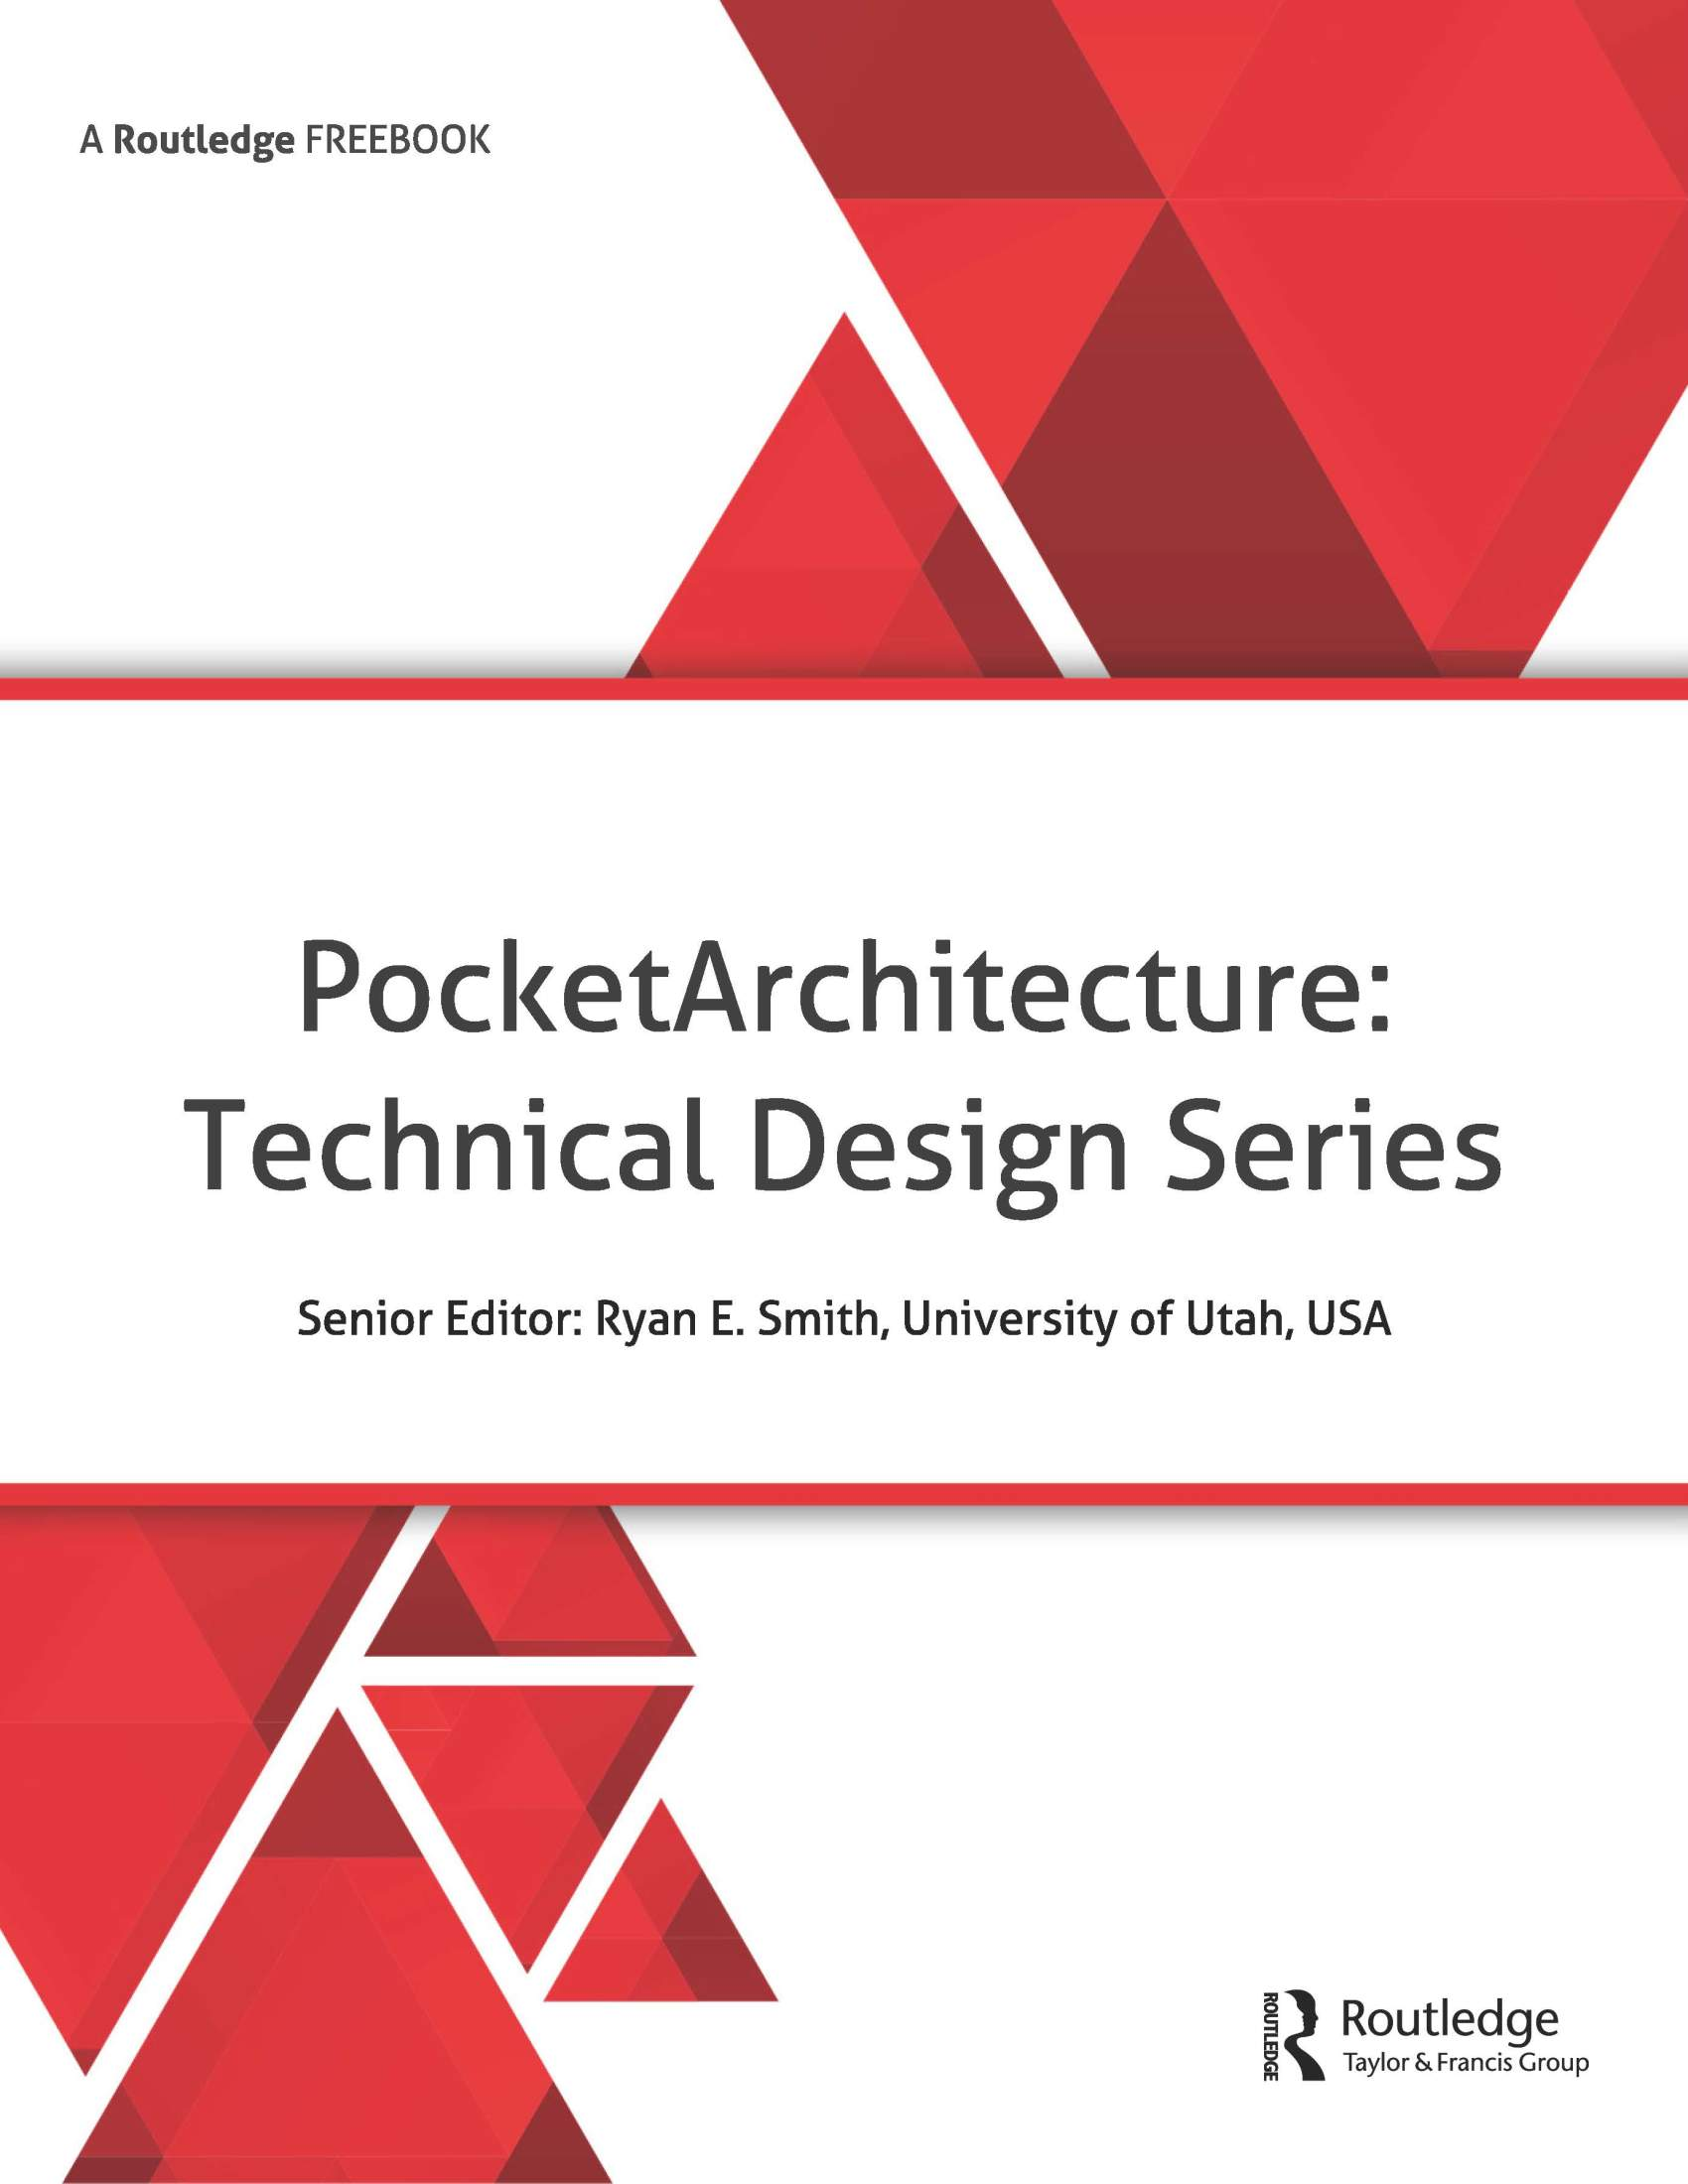 PocketArchitecture: Technical Design FreeBook